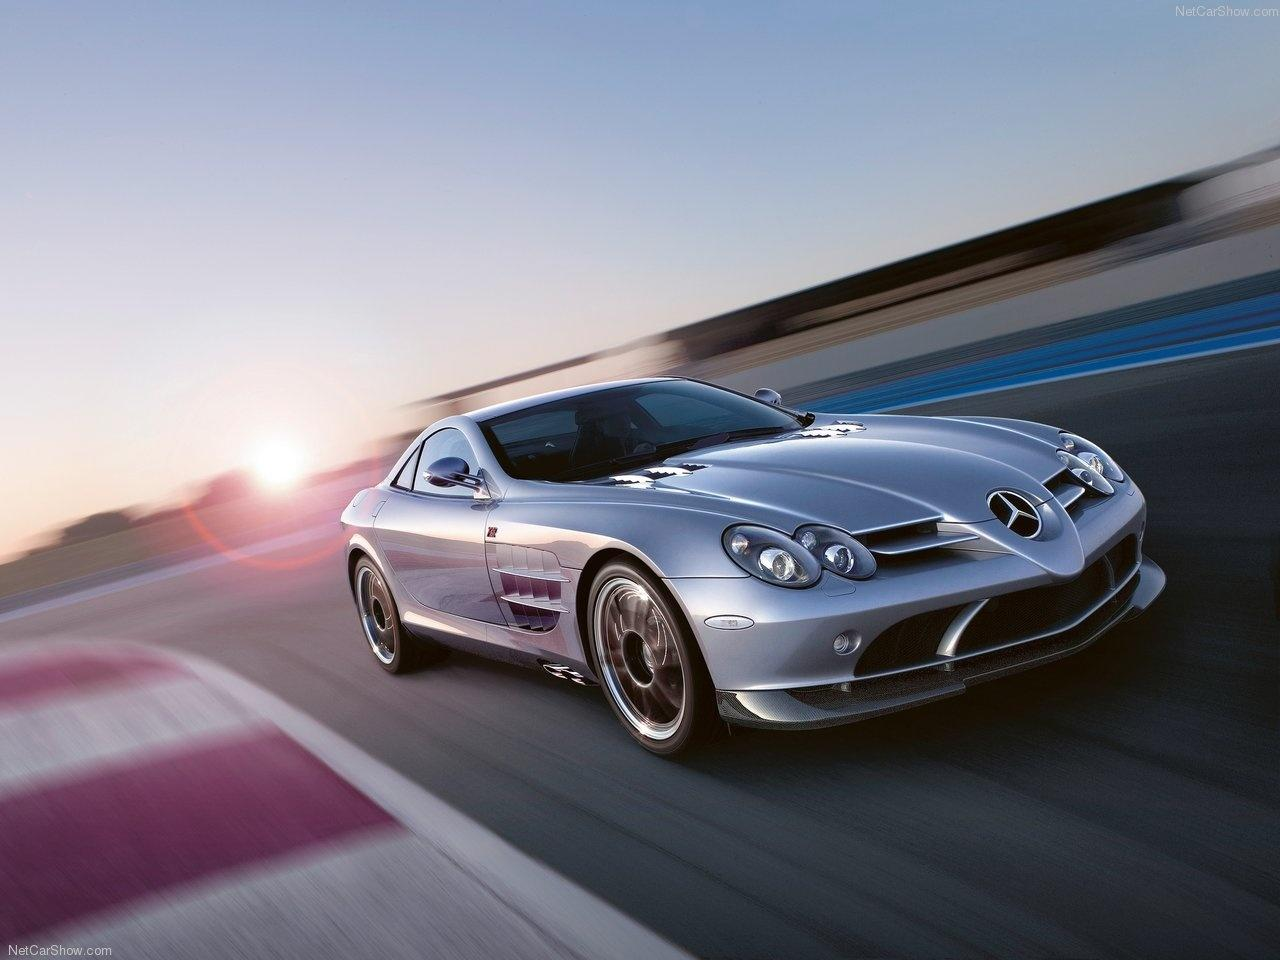 Mercedes-AMG will build a successor to its SLR McLaren supercar with up to 1,000 HP